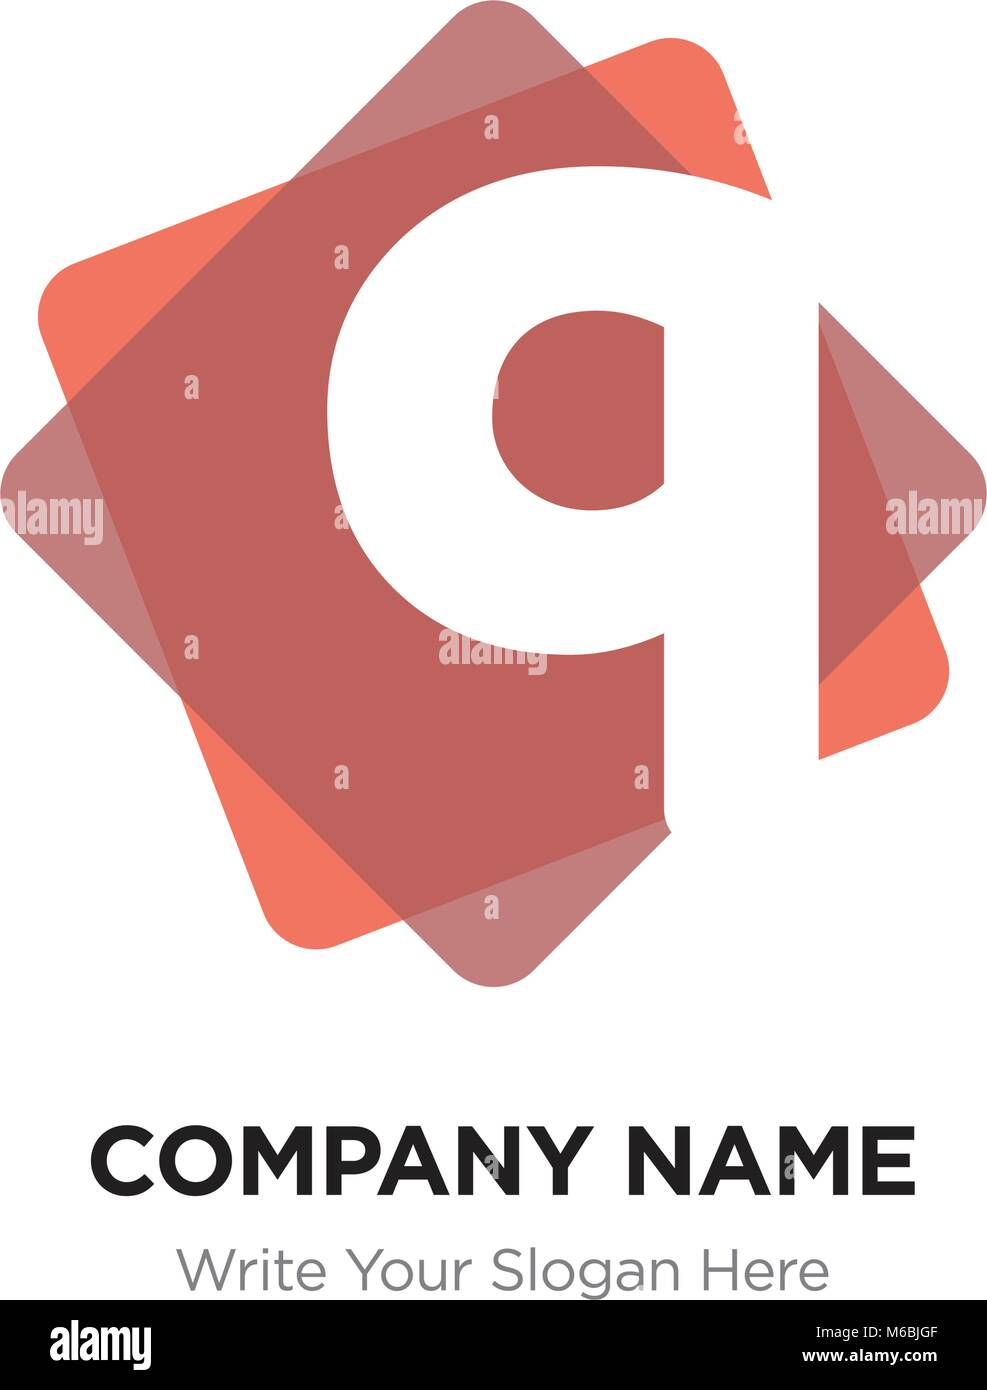 Q Vector Vectors Stock Photos & Q Vector Vectors Stock Images - Alamy